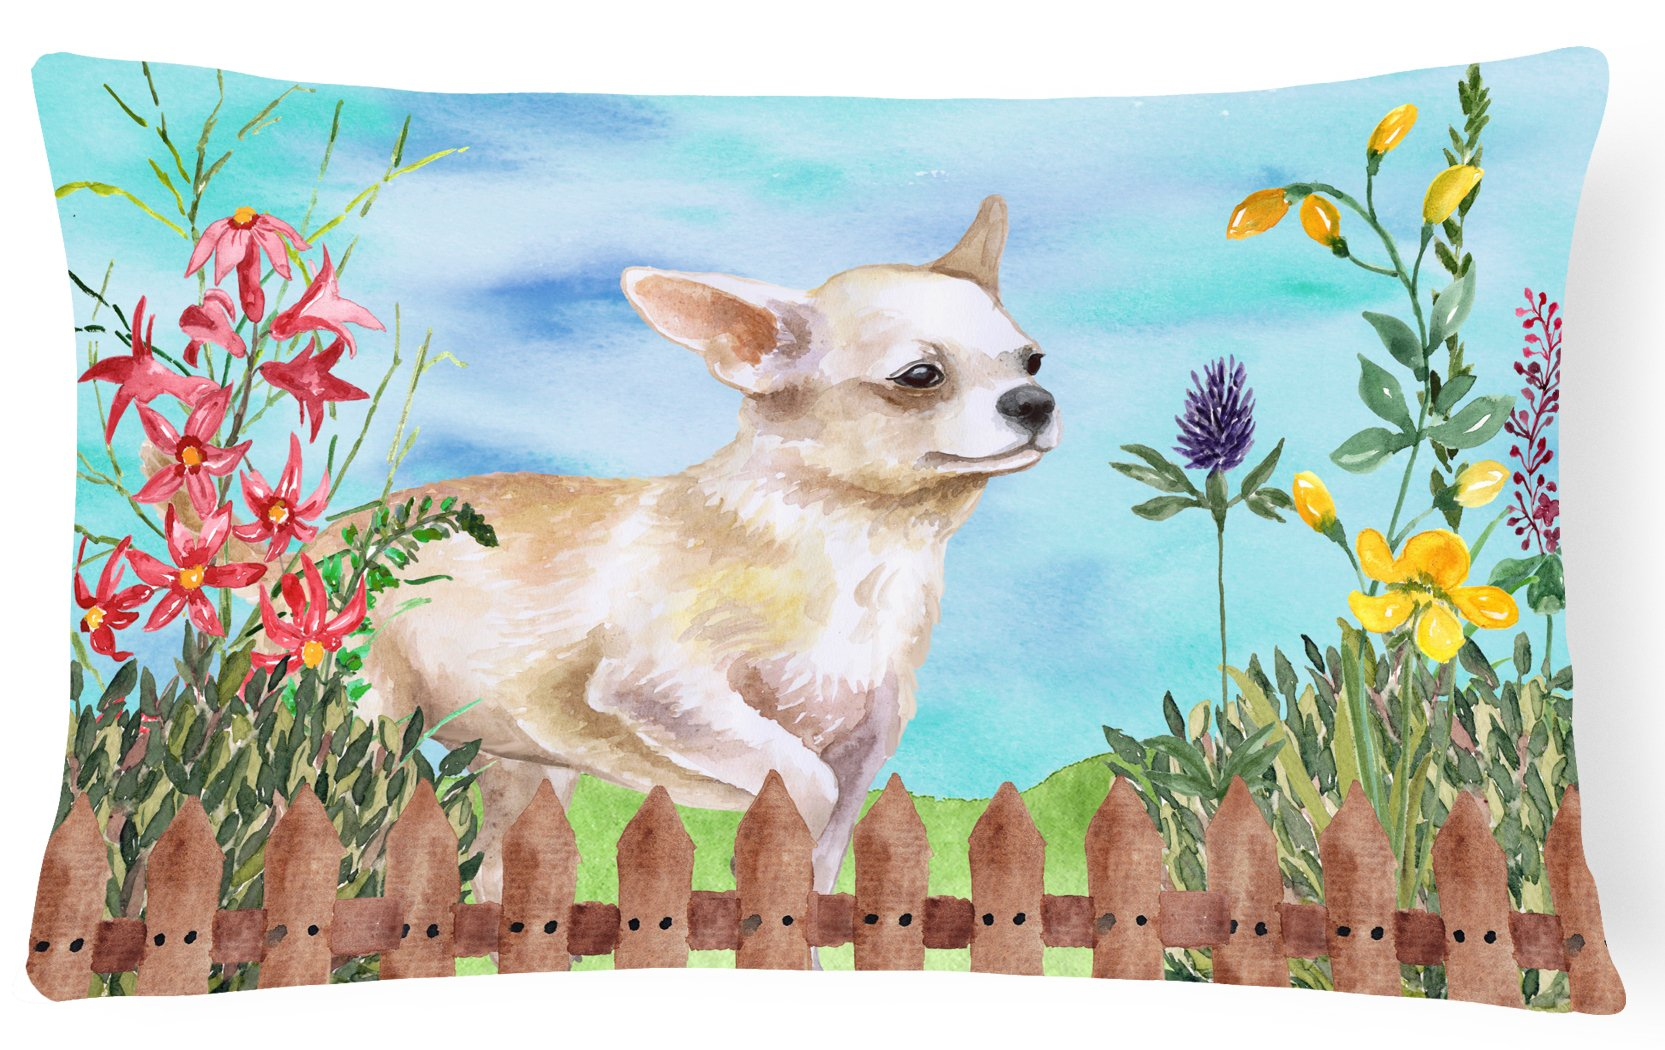 Chihuahua Leg up Spring Canvas Fabric Decorative Pillow CK1259PW1216 by Caroline's Treasures